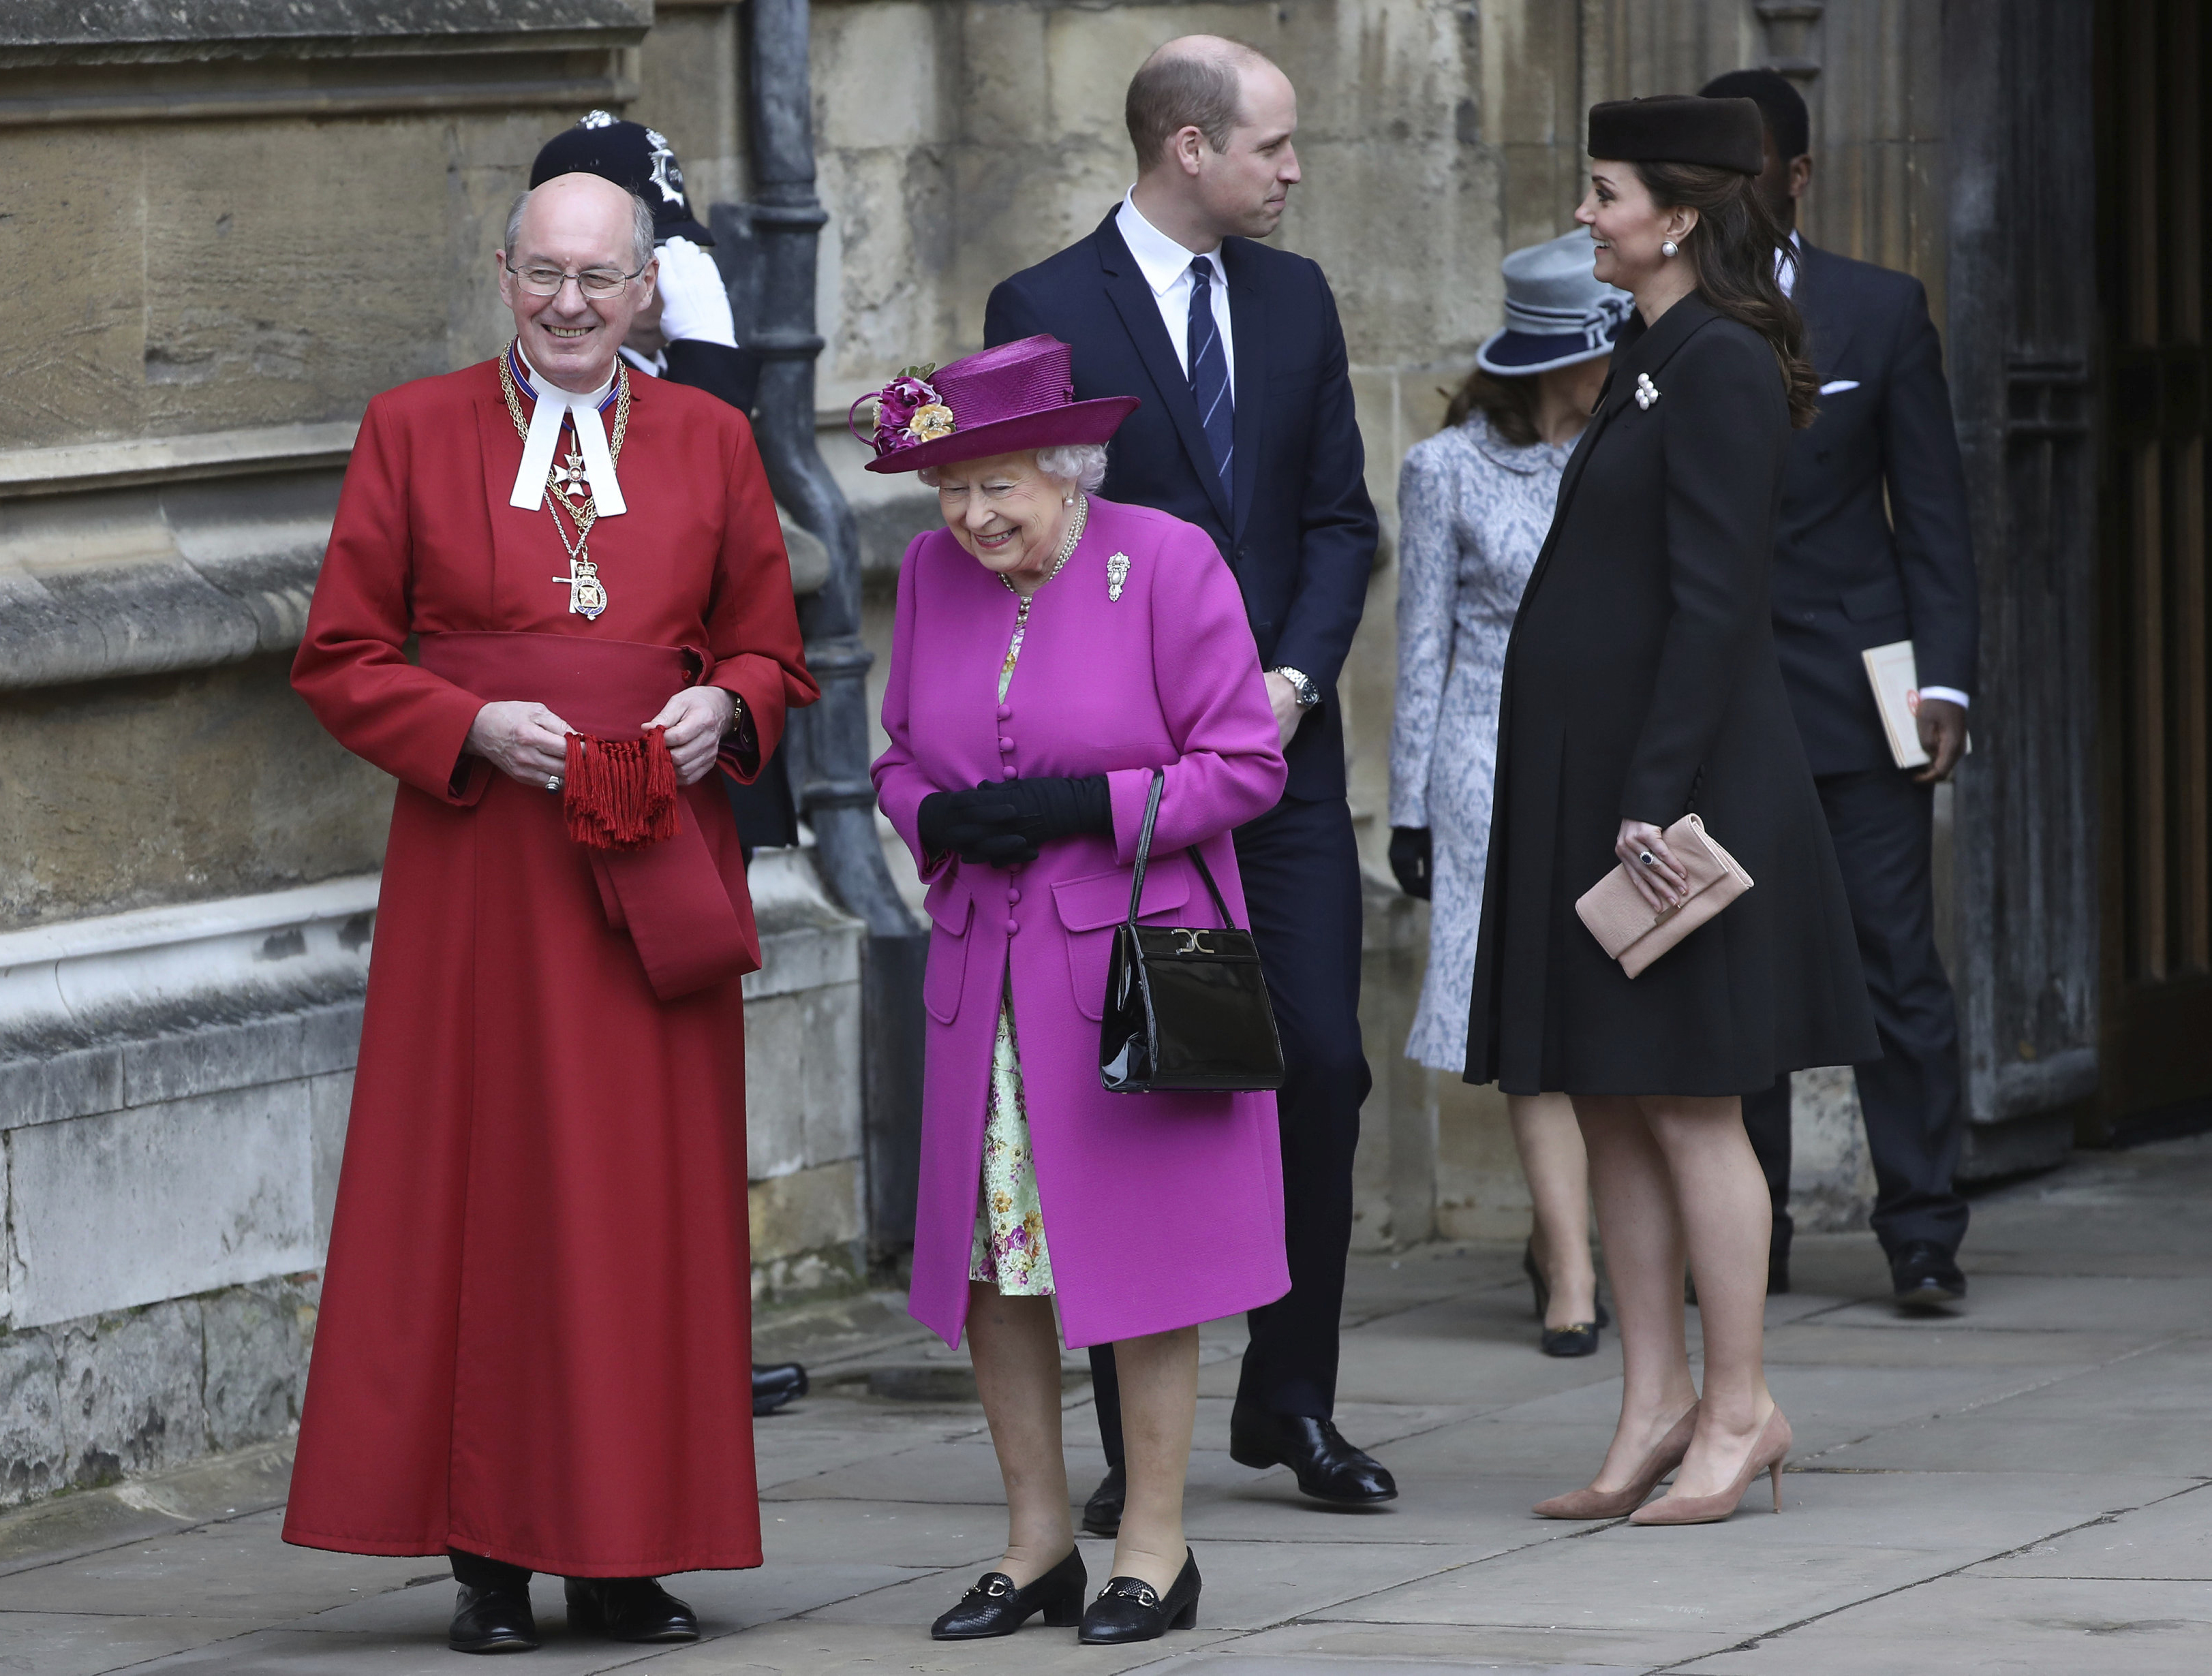 "<div class=""meta image-caption""><div class=""origin-logo origin-image none""><span>none</span></div><span class=""caption-text"">Queen Elizabeth II, with Prince William and Kate, Duchess of Cambridge, leave the annual Easter Sunday service at St George's Chapel at Windsor Castle in Windsor on April 1, 2018. (Simon Dawson/pool via AP)</span></div>"